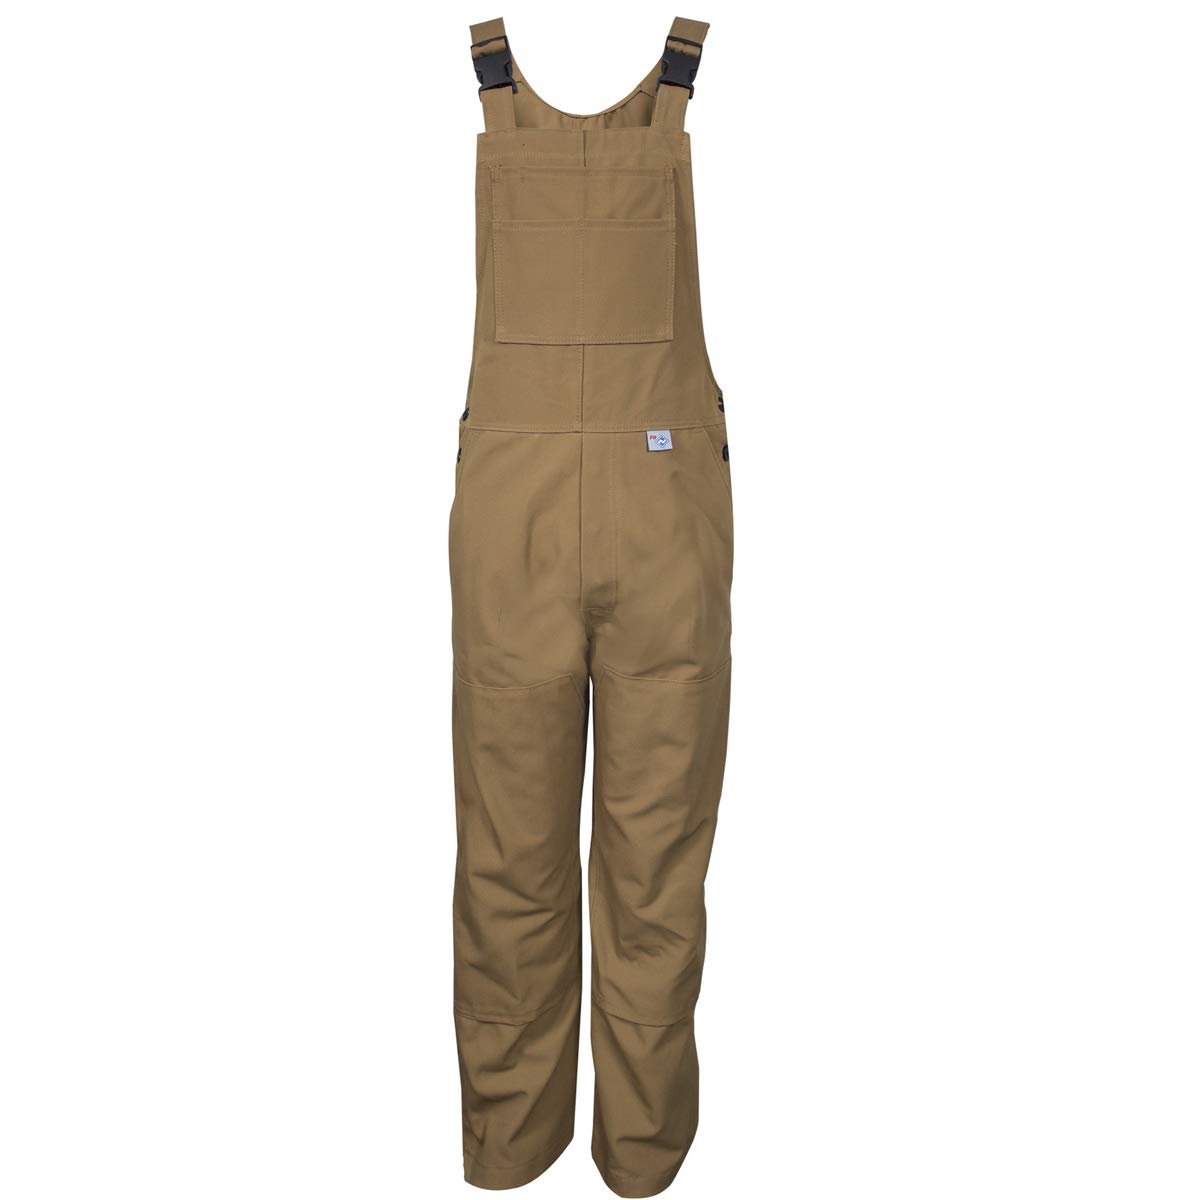 National Safety Apparel 40'' X 32'' Brown Duck 16 cal/cm Flame Resistant Bib Overall With Snap Closure